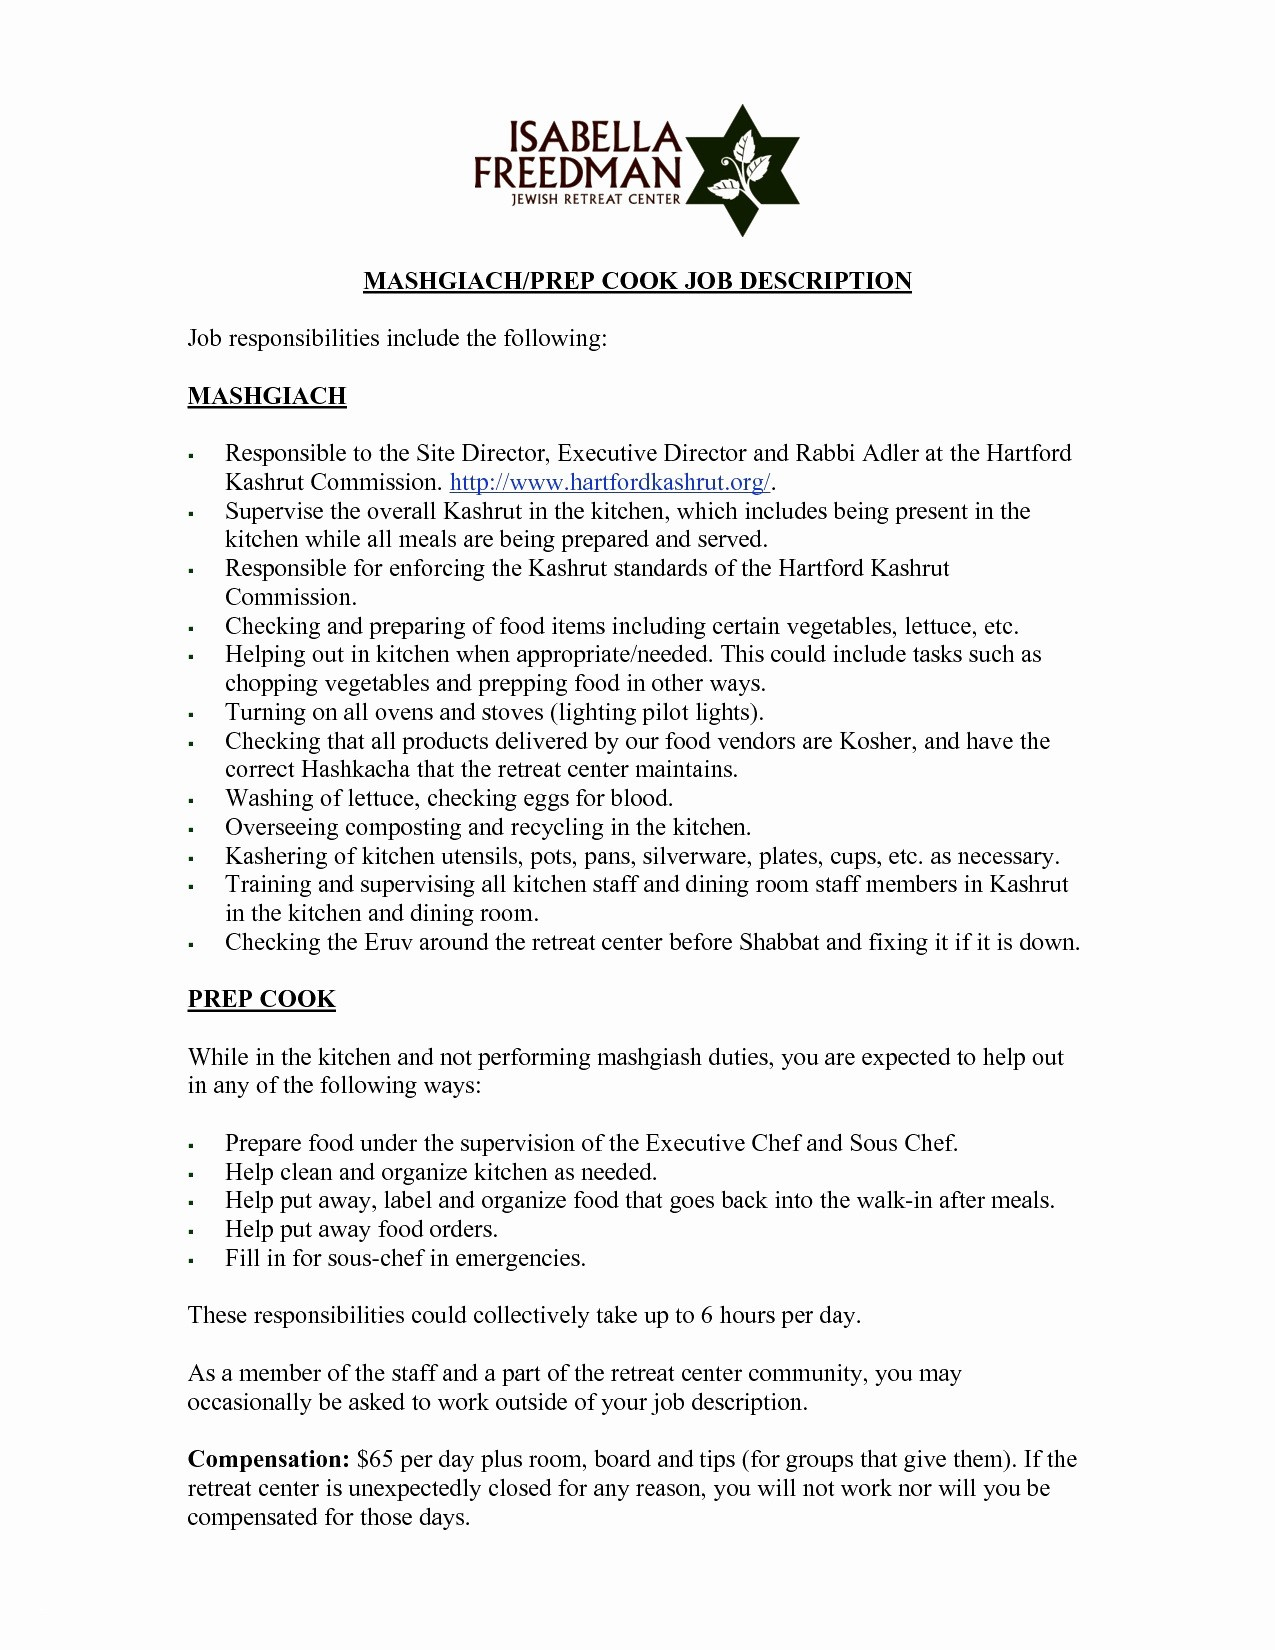 Media Cover Letter Template - Members Resolution Template Best Resume Doc Template Luxury